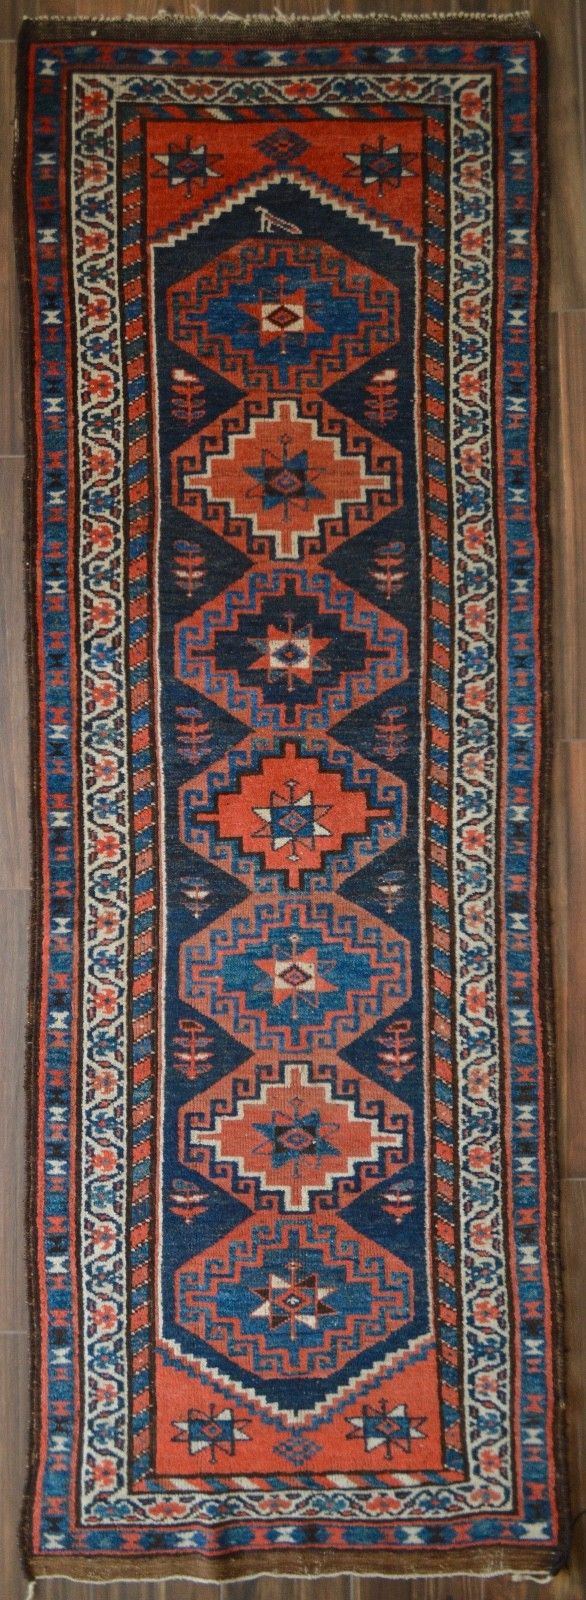 Semi-Antique Kurdish Runner Rug - 3'6